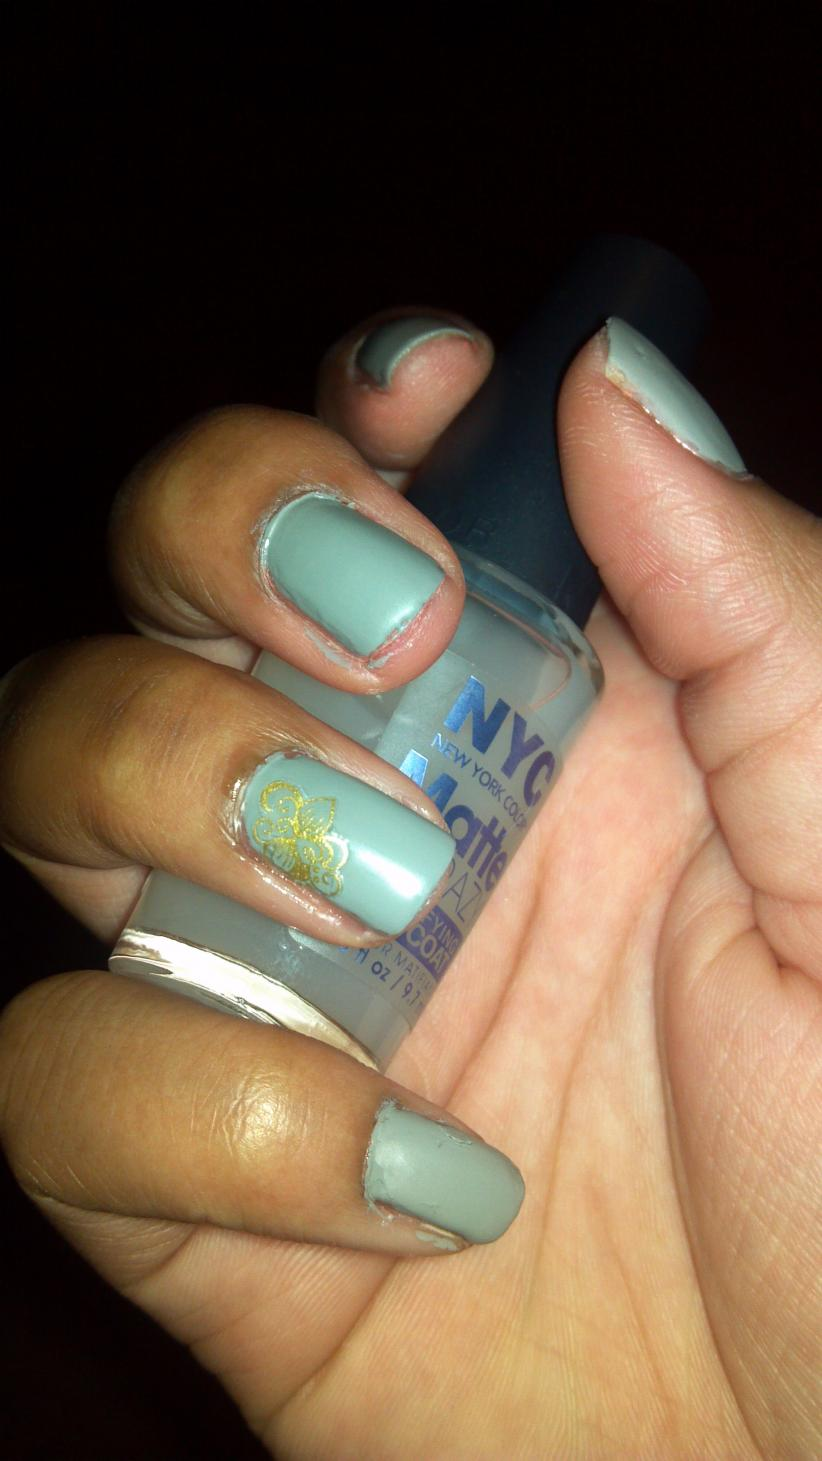 Nail of the day (NOTD)-uploadfromtaptalk1346547845237.jpg